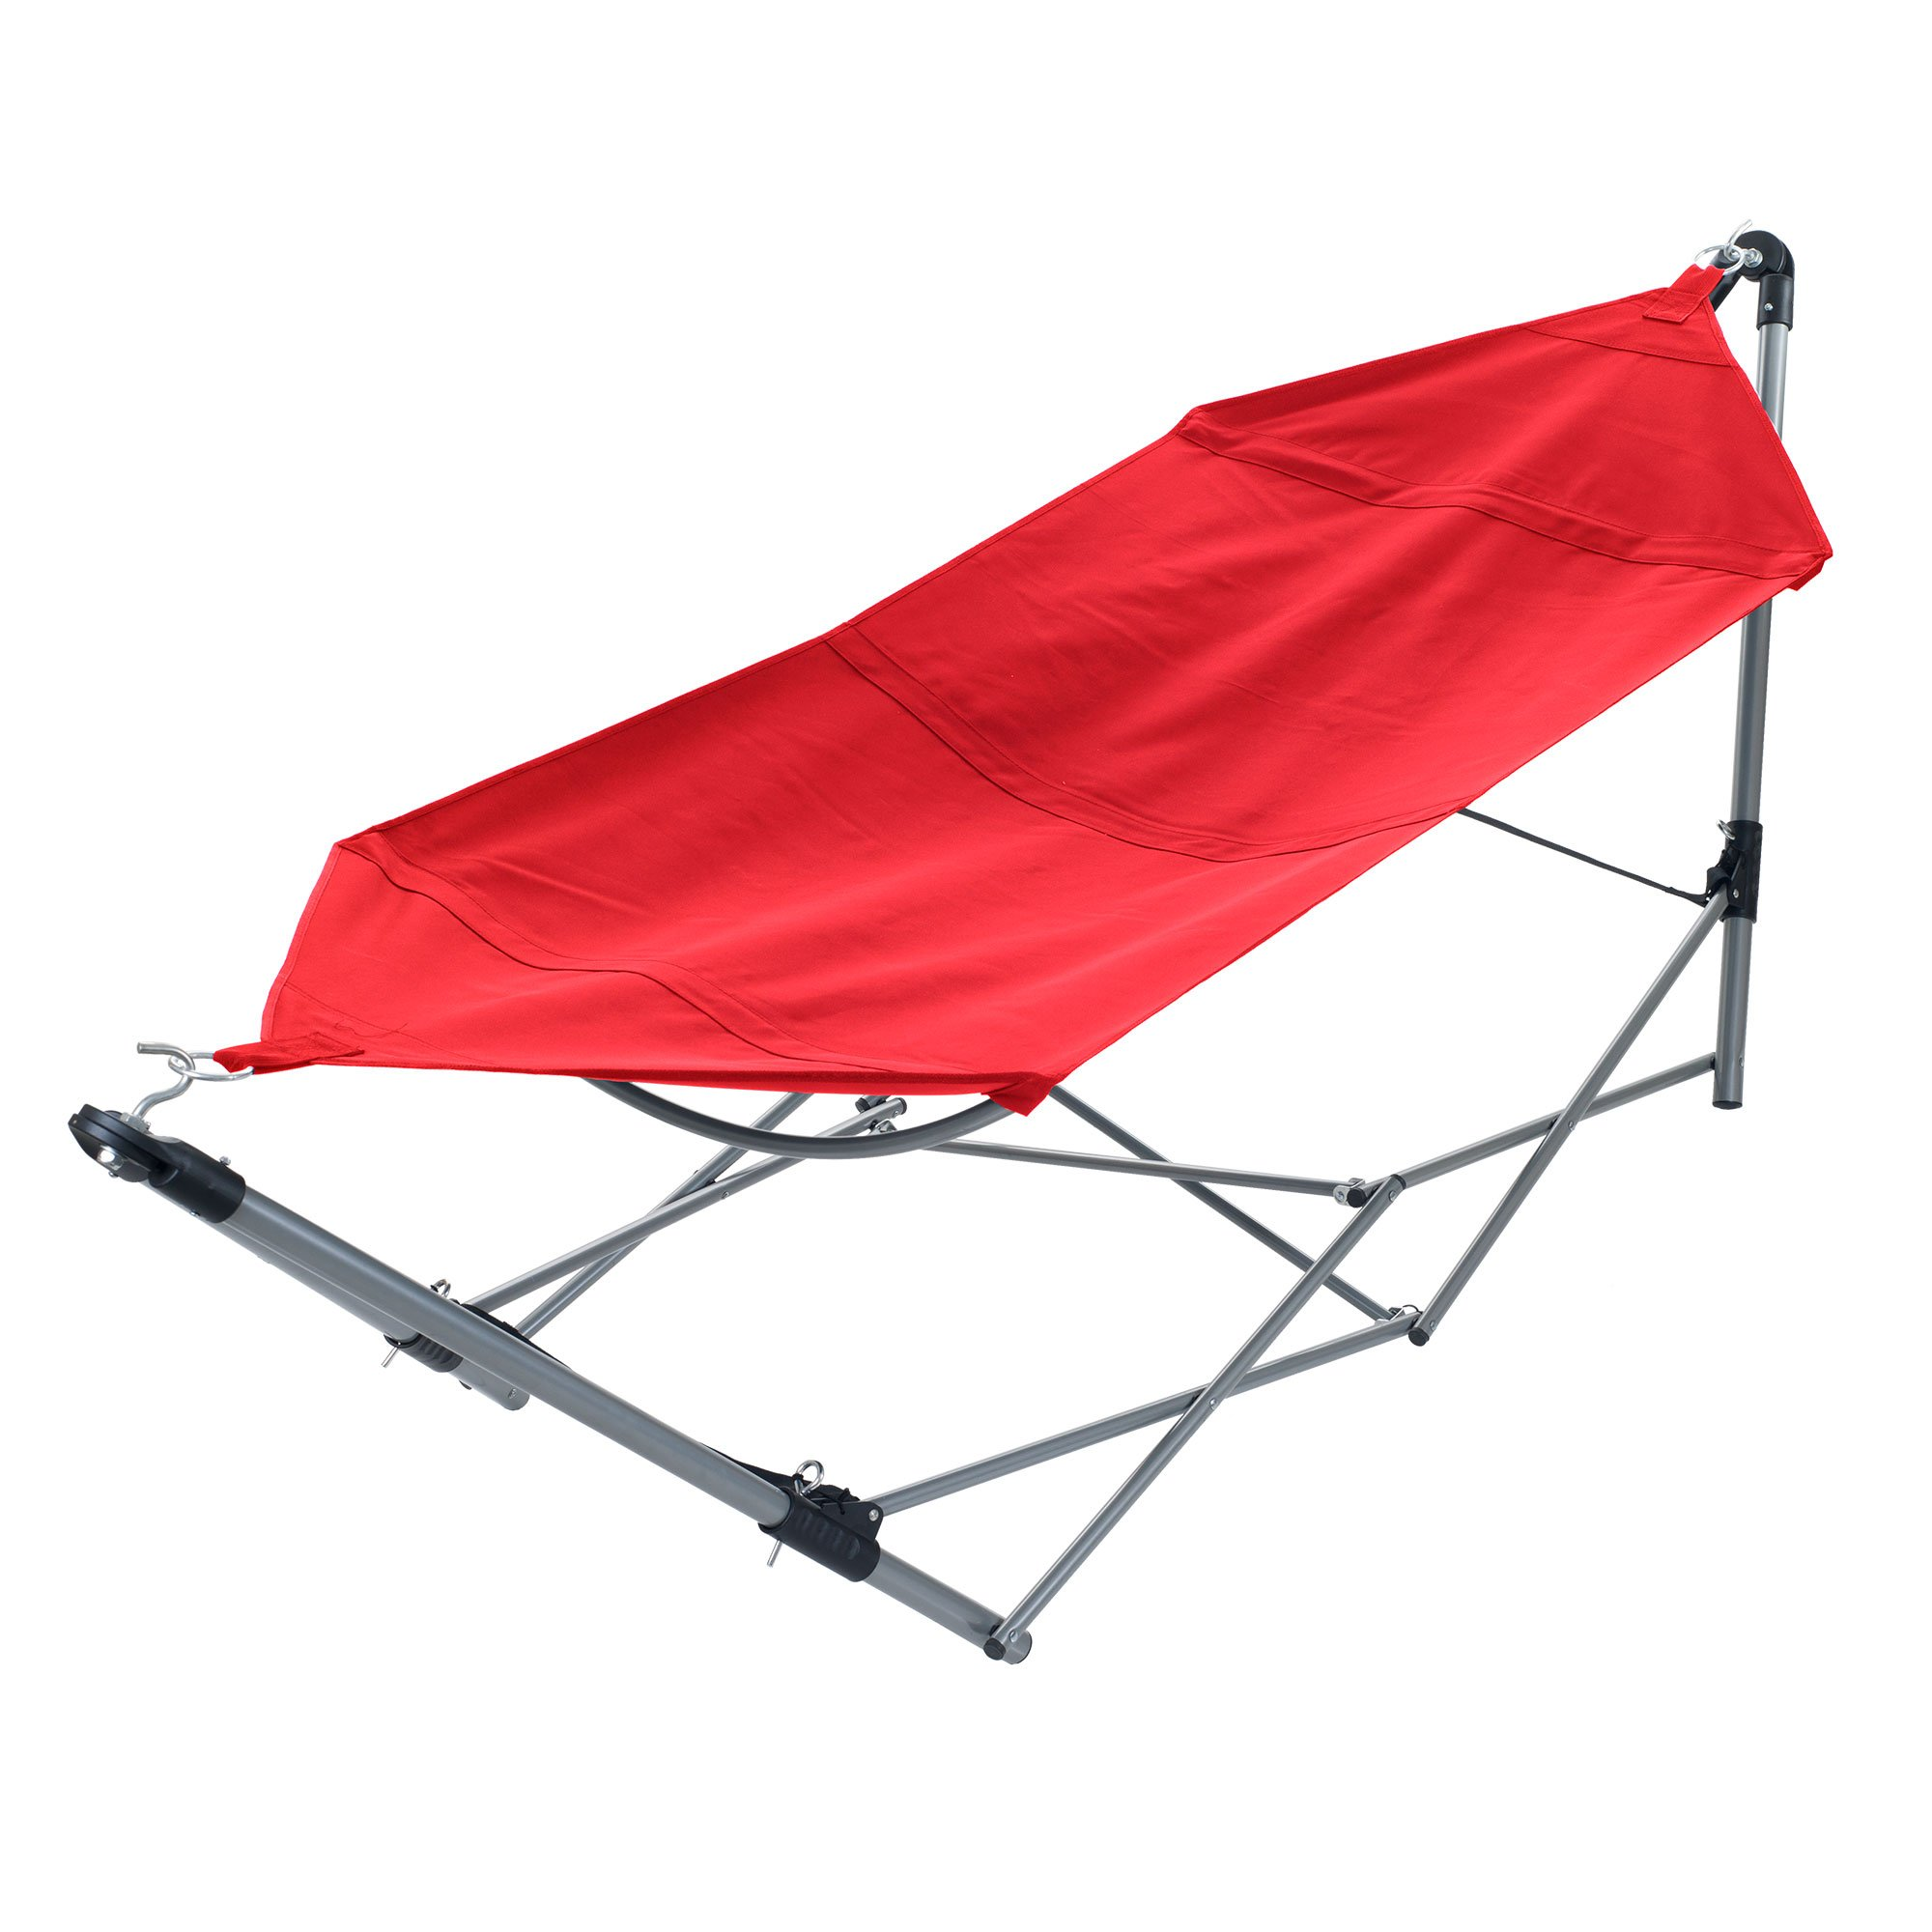 Pure Garden 80-91001R Portable Hammock with Stand-Folds and Fits into Included C, 97.5x31.5 Red